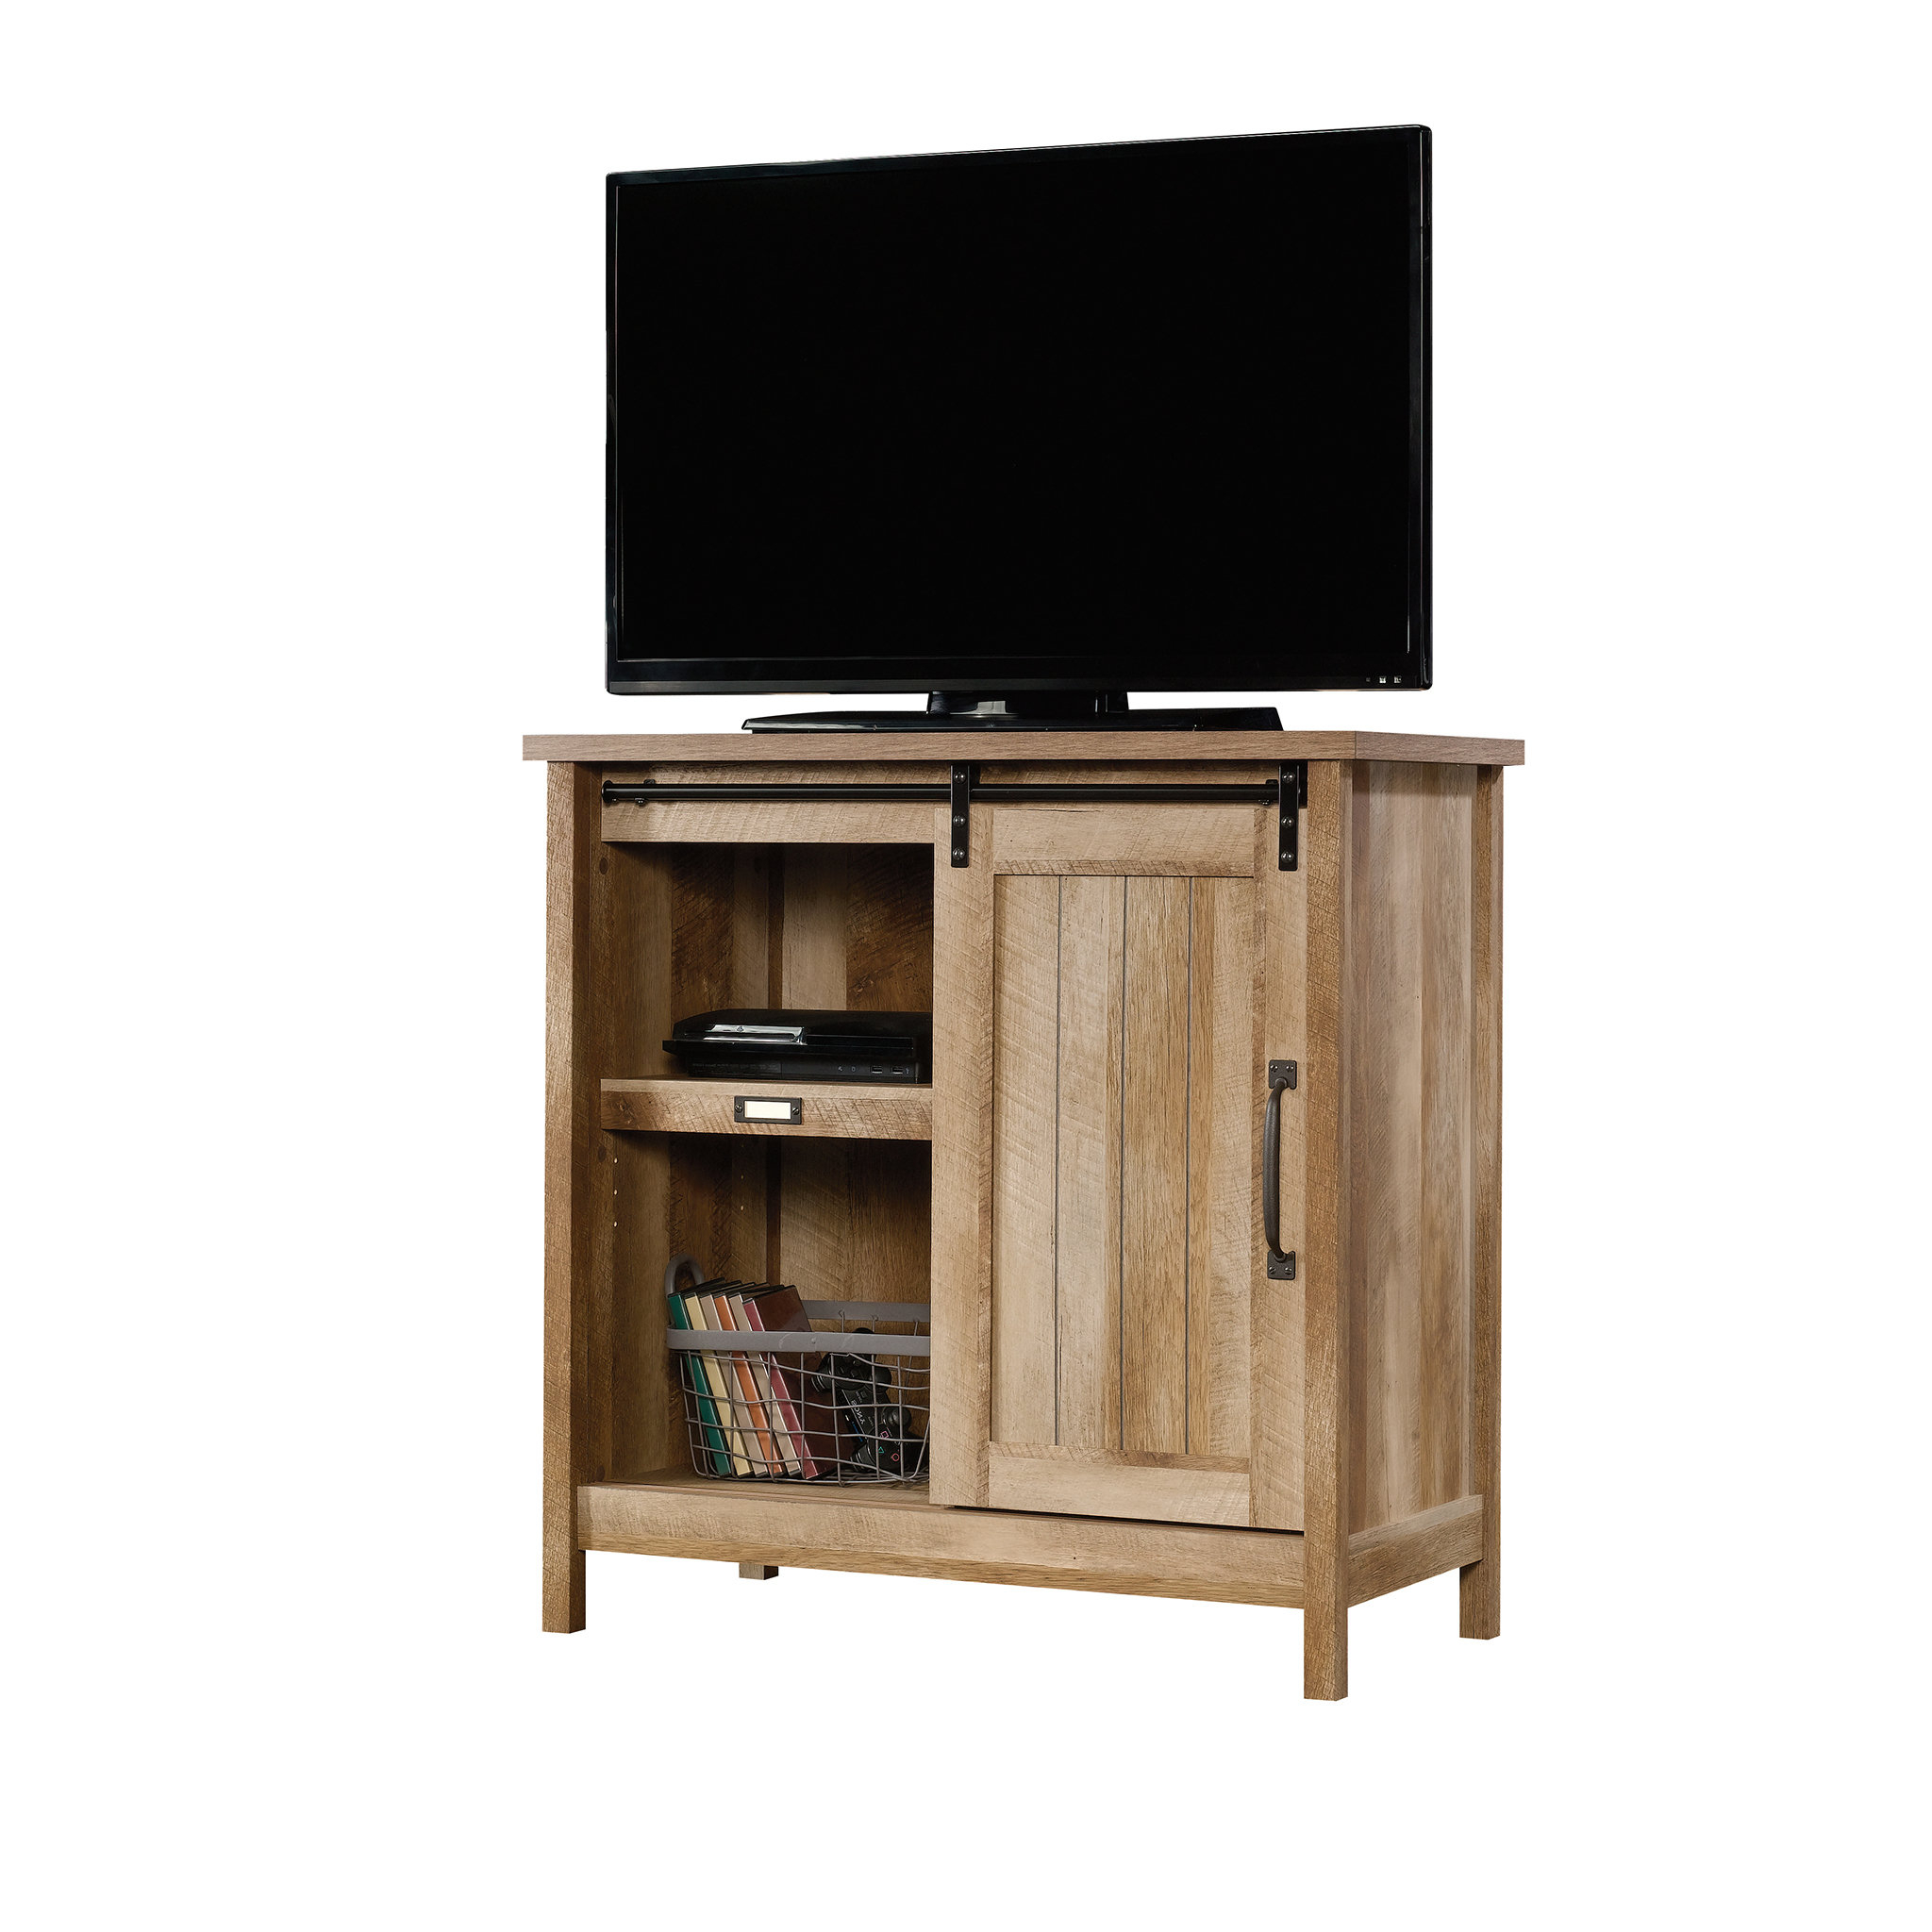 Tall Tv Stands You'll Love | Wayfair With Regard To Edwin Grey 64 Inch Tv Stands (View 19 of 20)